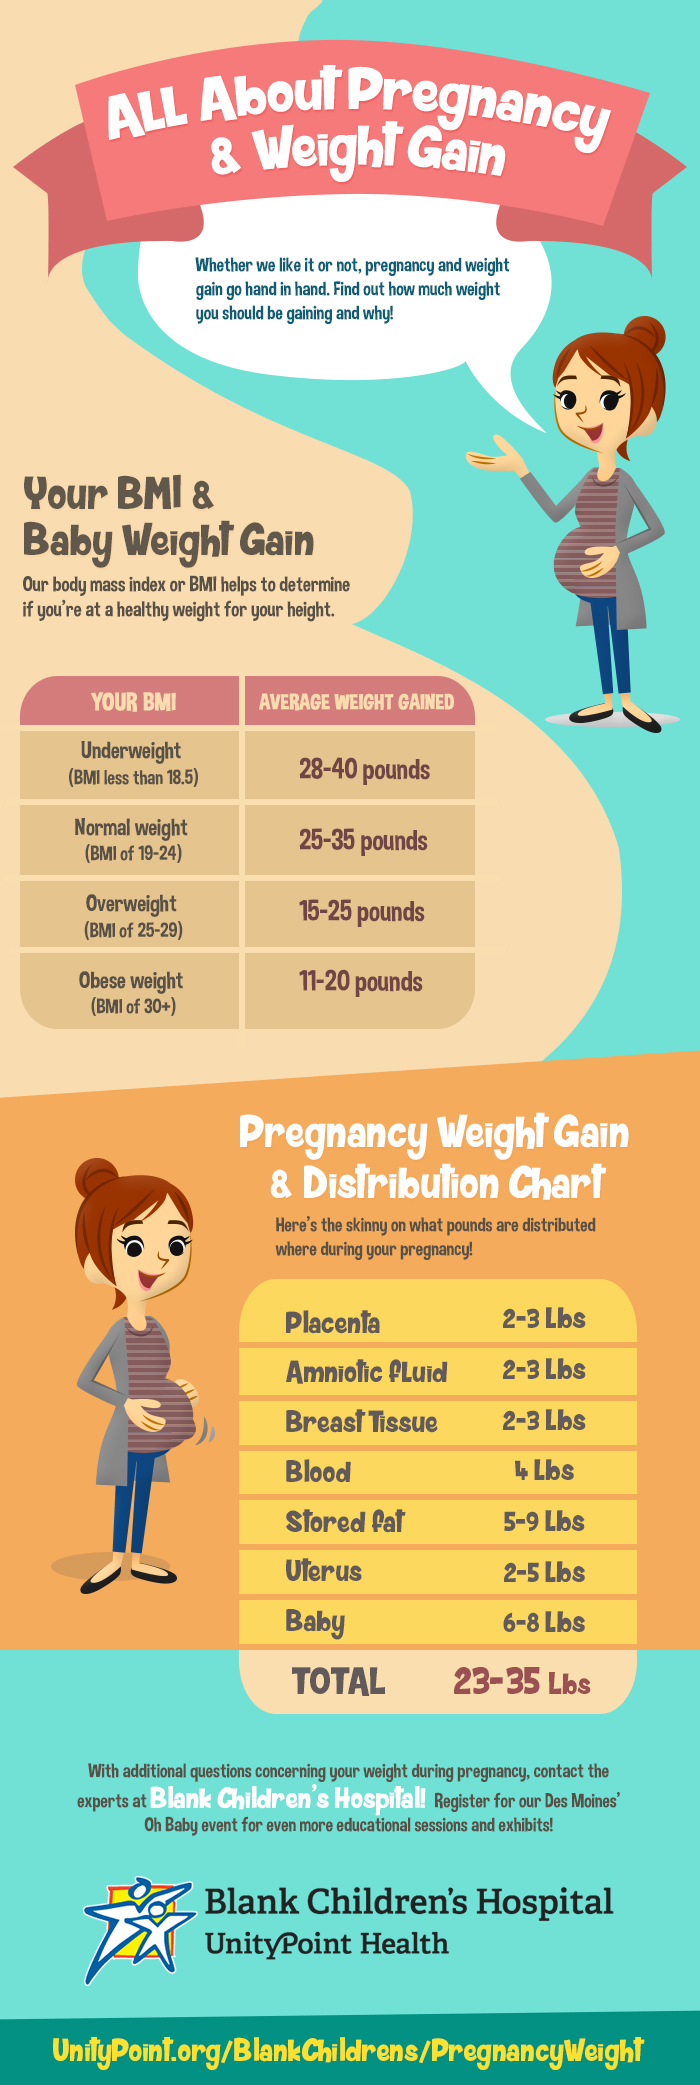 Pregnancy Weight Gain: How Much Is Enough? - Infographic